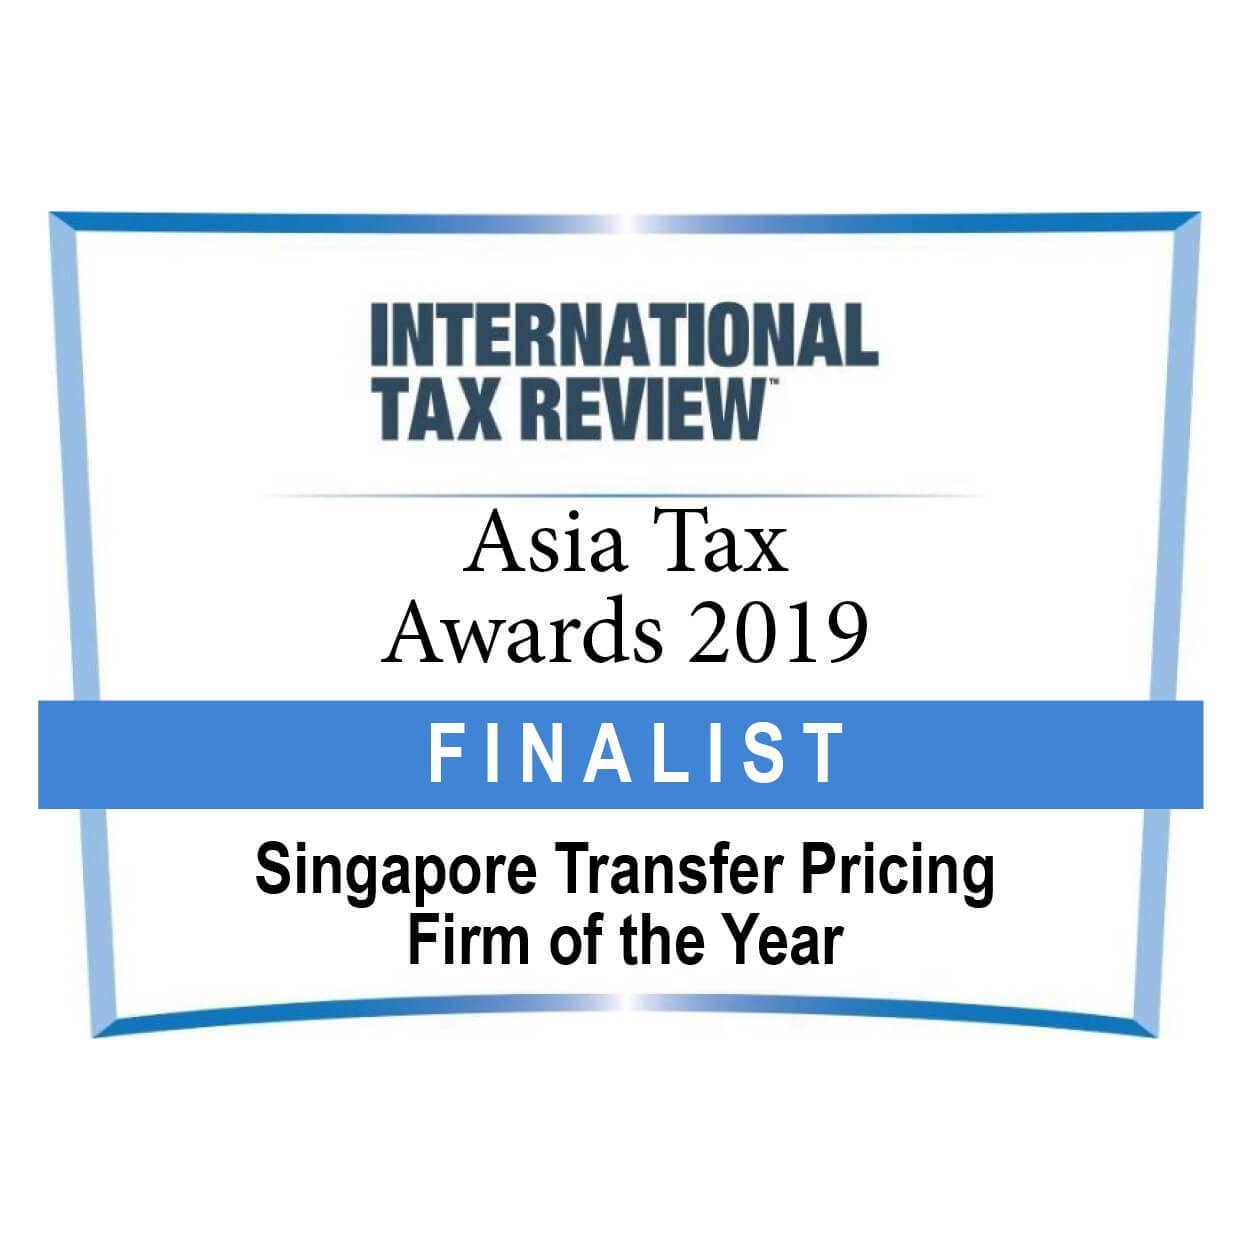 Singapore TP Firm - 2019